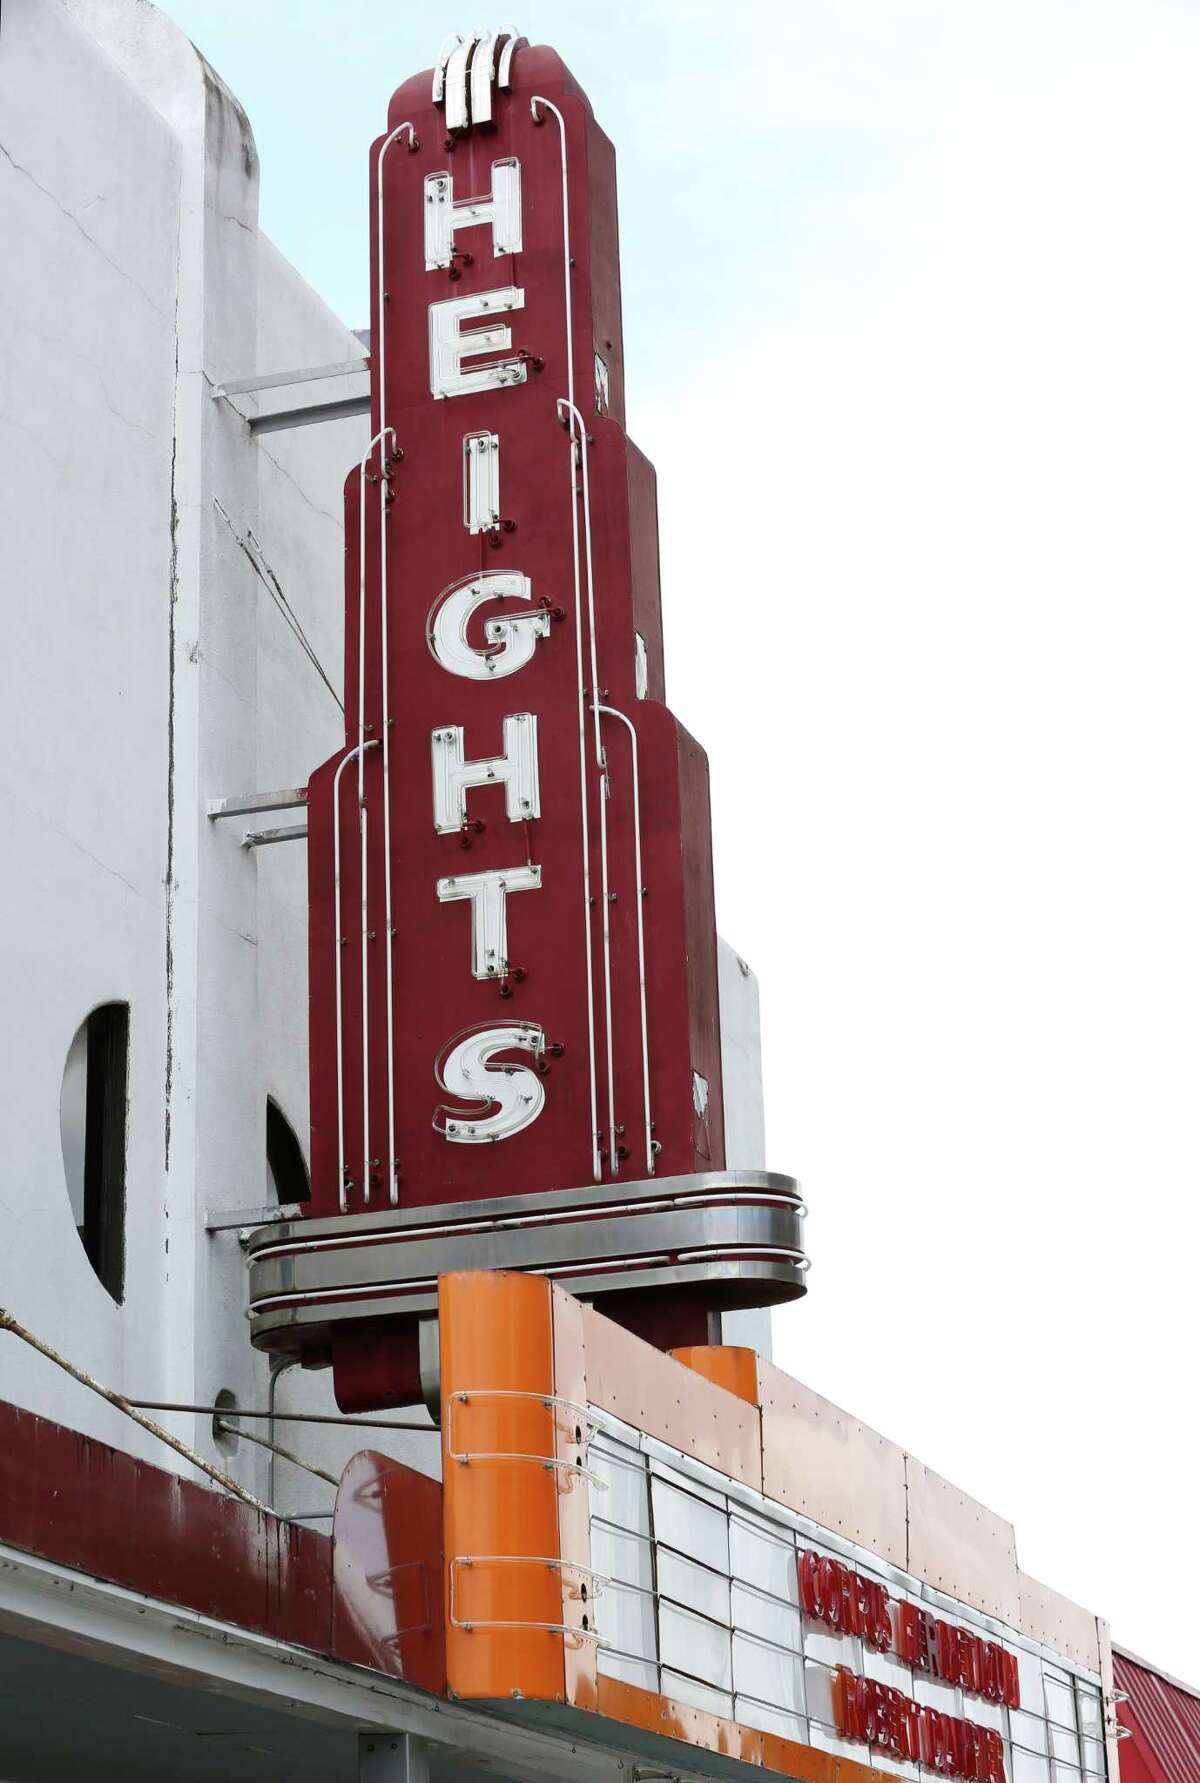 The former Heights Theater is seen Wednesday, July 22, 2015, in Houston. The building at 308 Main St. and the former Heights Theater at 339 W. 19th St. were designated landmarks by the City of Houston. ( Jon Shapley / Houston Chronicle )